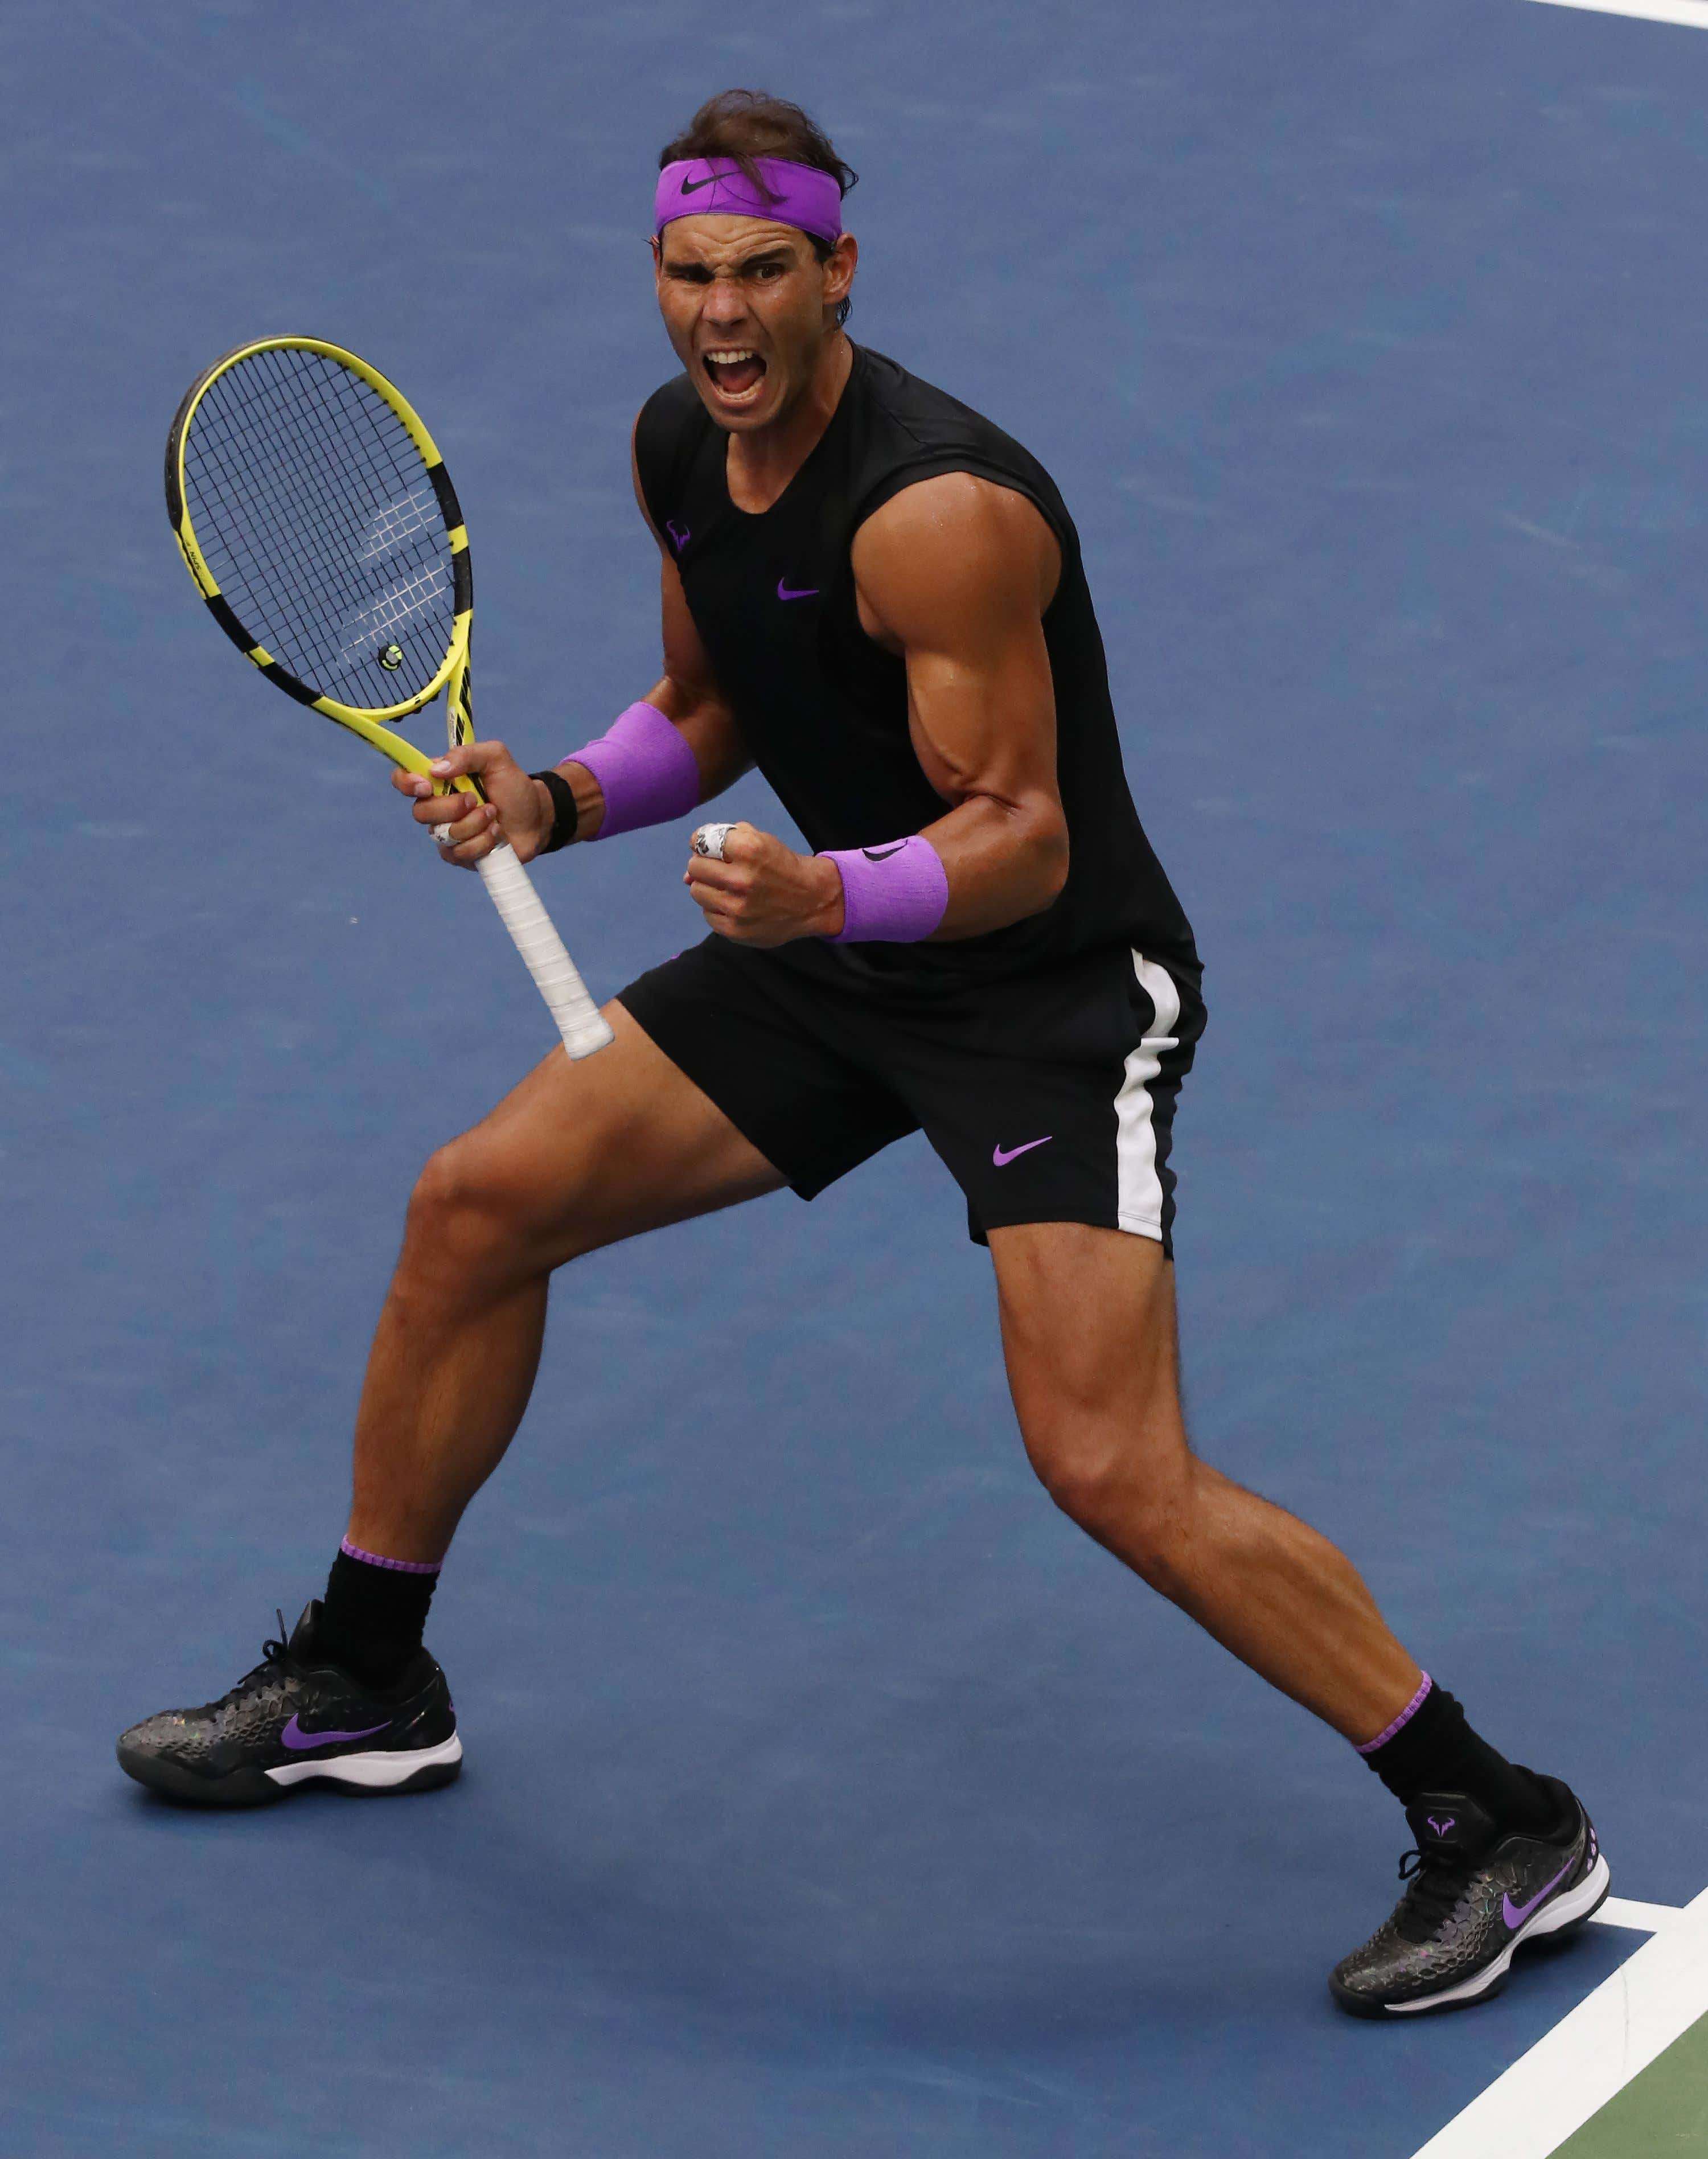 Rafael Nadal of Spain reacts as he plays Daniil Medvedev of Russia during the men's final match on the fourteenth day of the US Open Tennis Championships the USTA National Tennis Center in Flushing Meadows, New York, USA, 08 September 2019. The US Open runs from 26 August through 08 September.